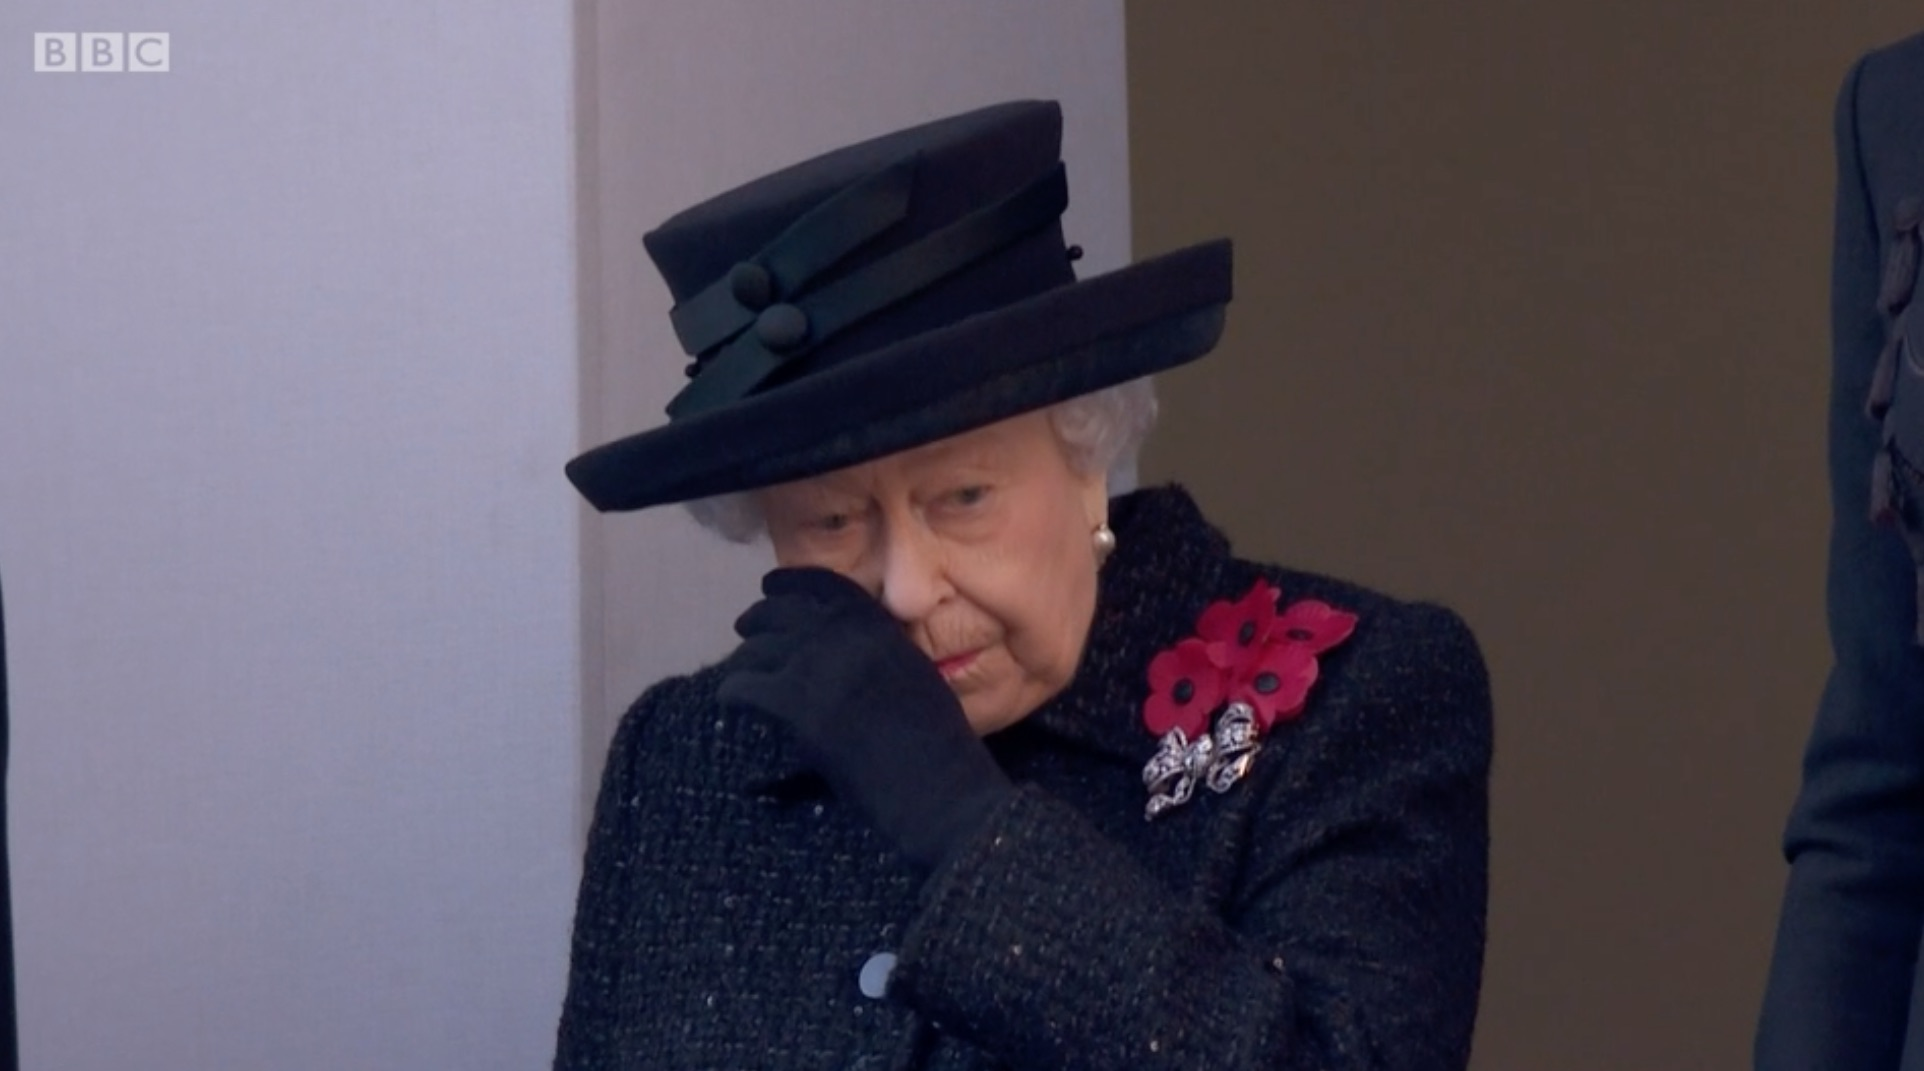 The Queen wipes away a tear during emotional Remembrance Sunday ceremony